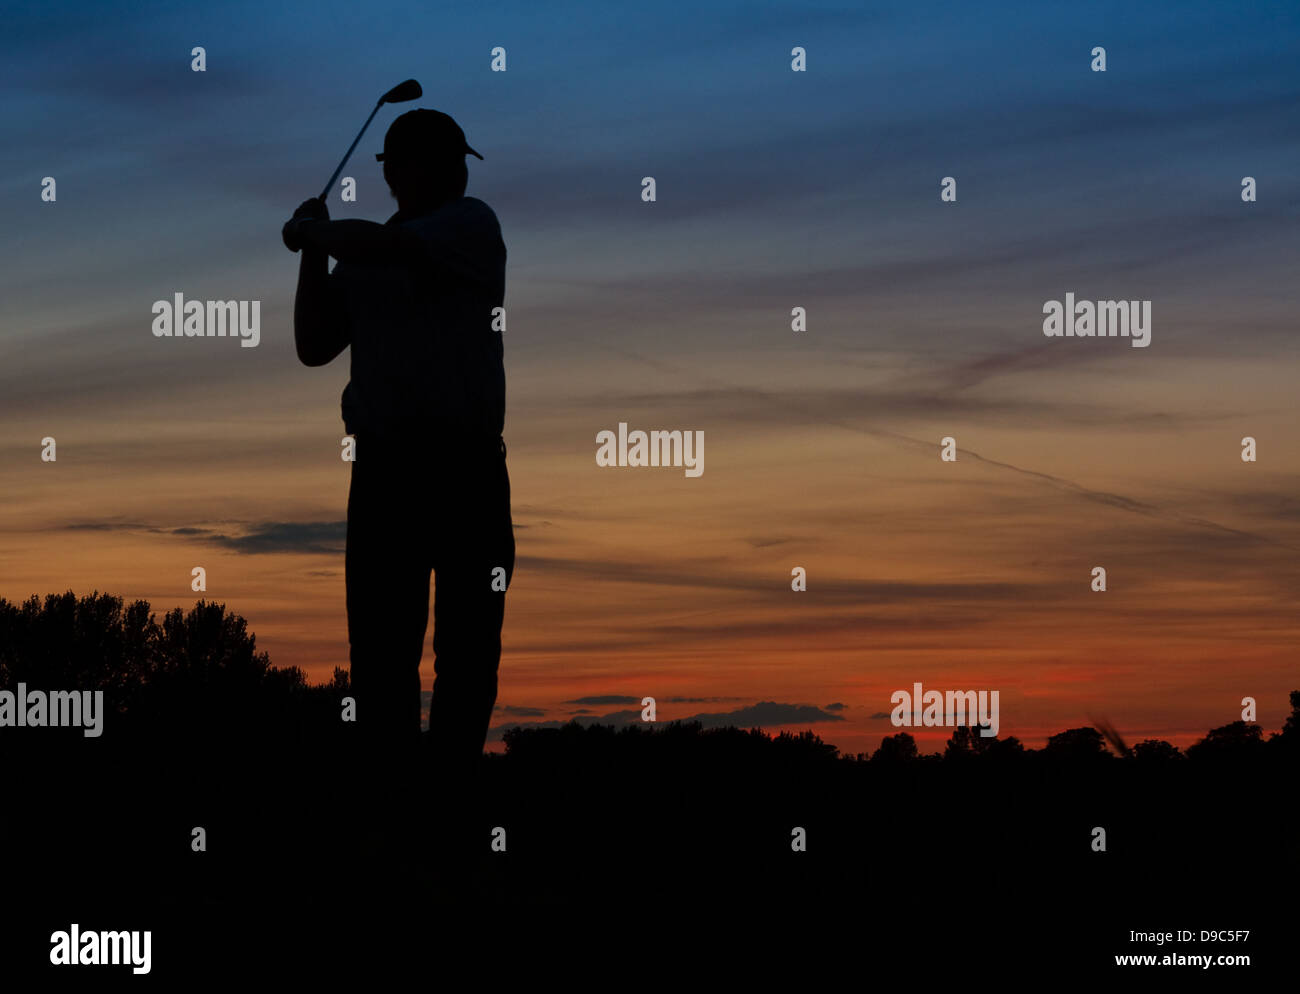 Silhouette of a Golfer teeing off early at dawn - Stock Image